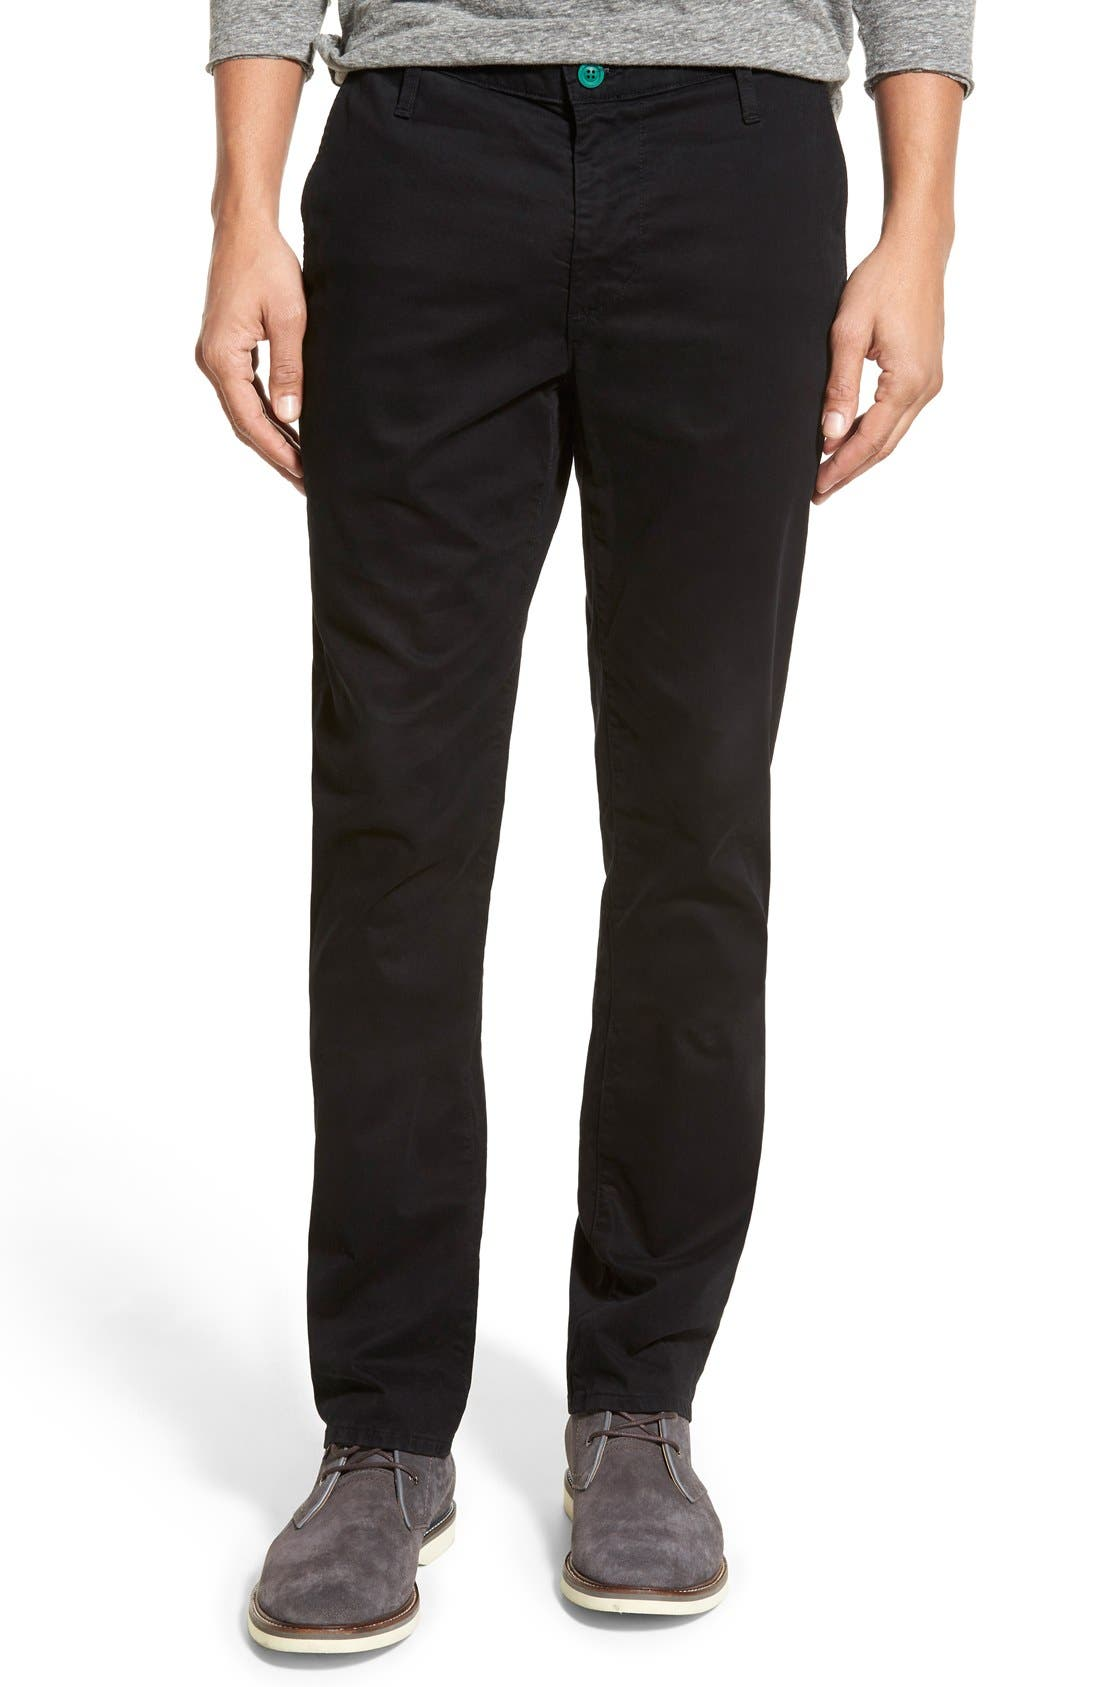 AG Green Label 'Graduate' Slim Straight Leg Golf Pants